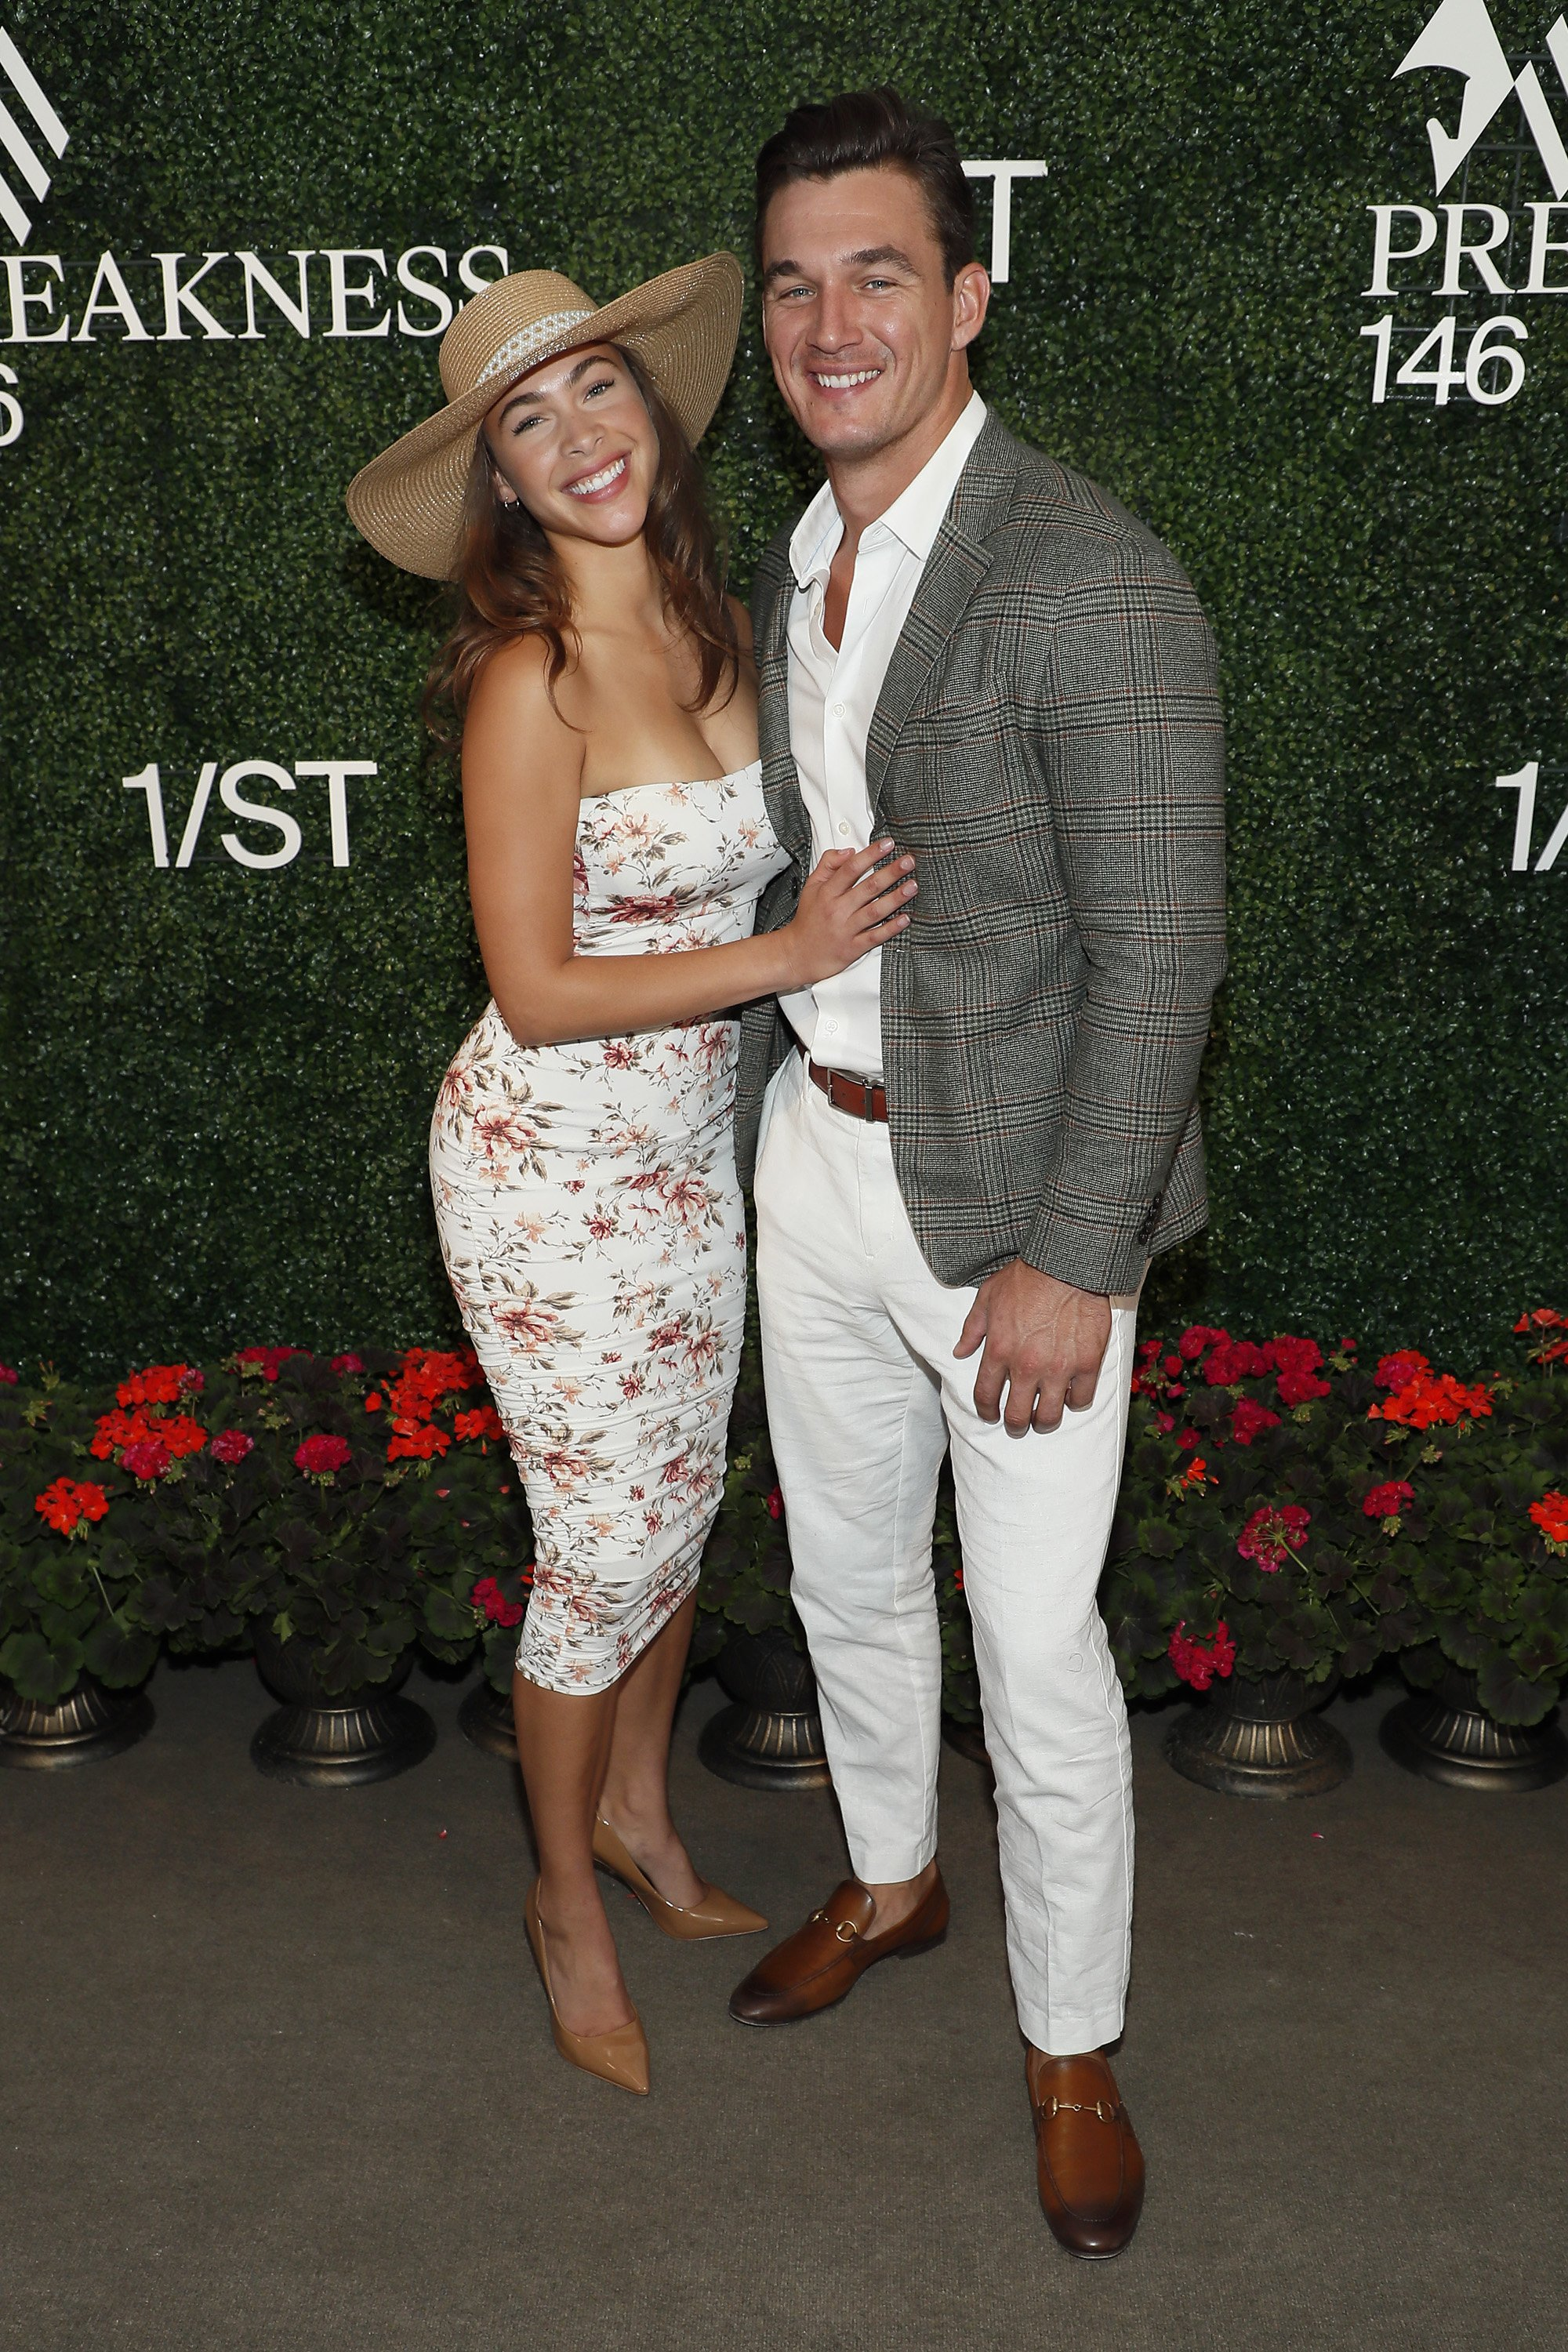 Tyler Cameron and Camila Kendra at Preakness 146 hosted by 1/ST at Pimlico Race Course in Baltimore, Maryland   Photo: Paul Morigi/Getty Images for The Stronach Group